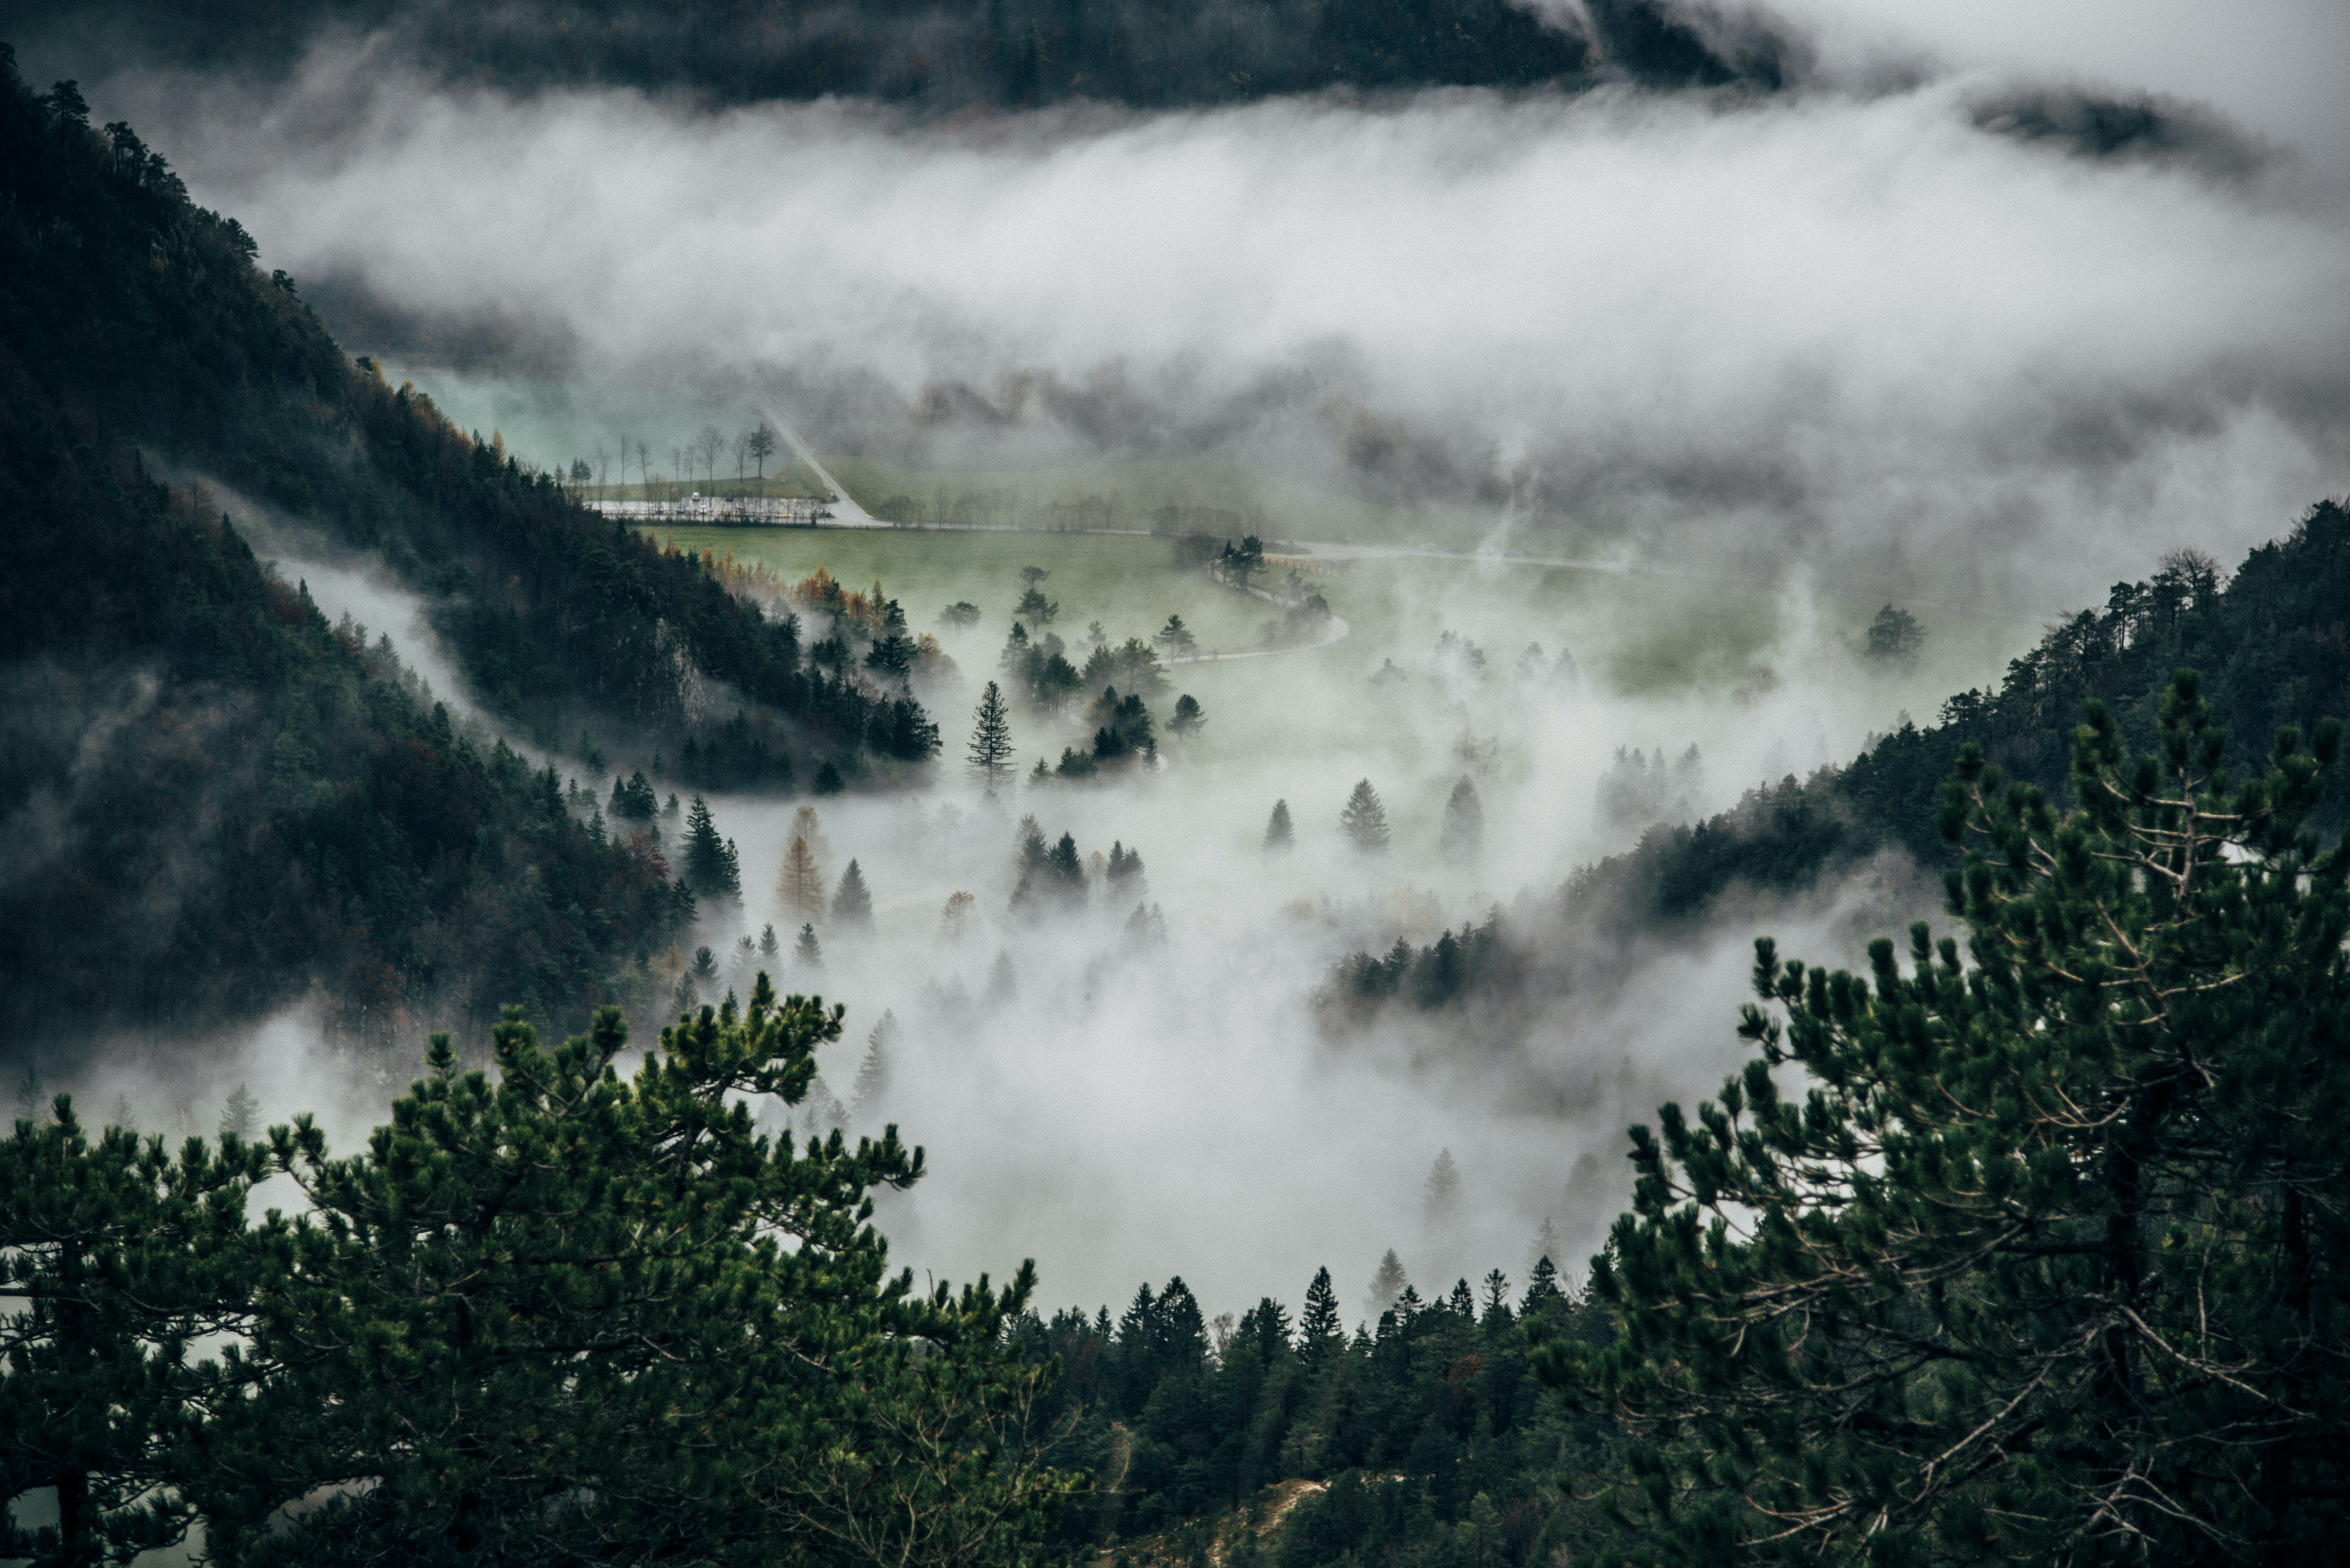 A wooded valley shrouded in a thick mist